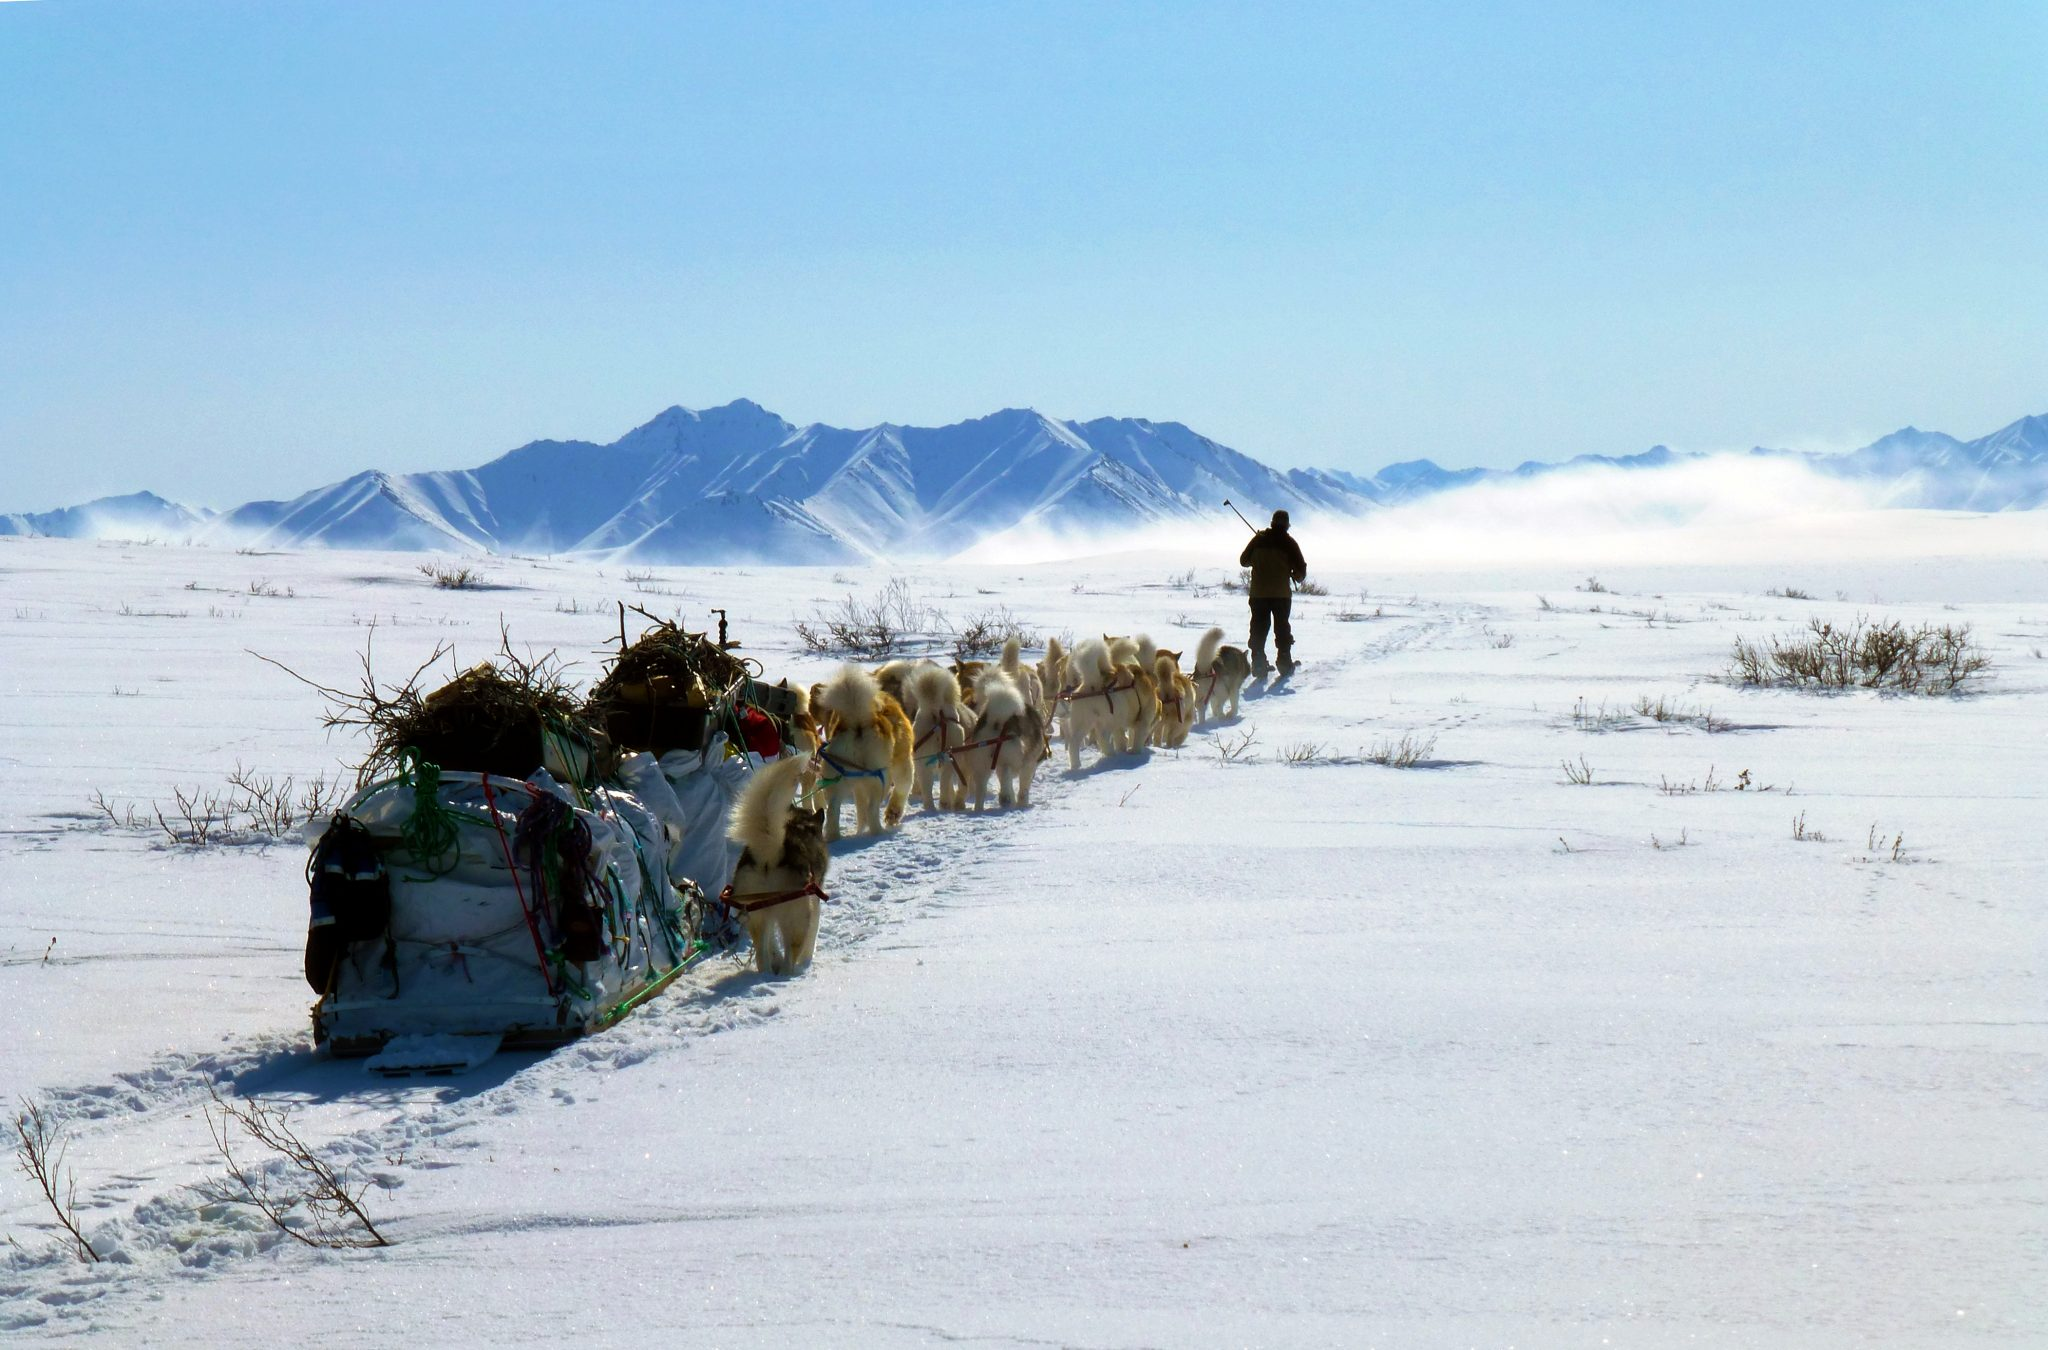 Joe Henderson skis ahead of 22 Alaskan Malamutes towards Brooks Range in ANWR during Arctic expedition